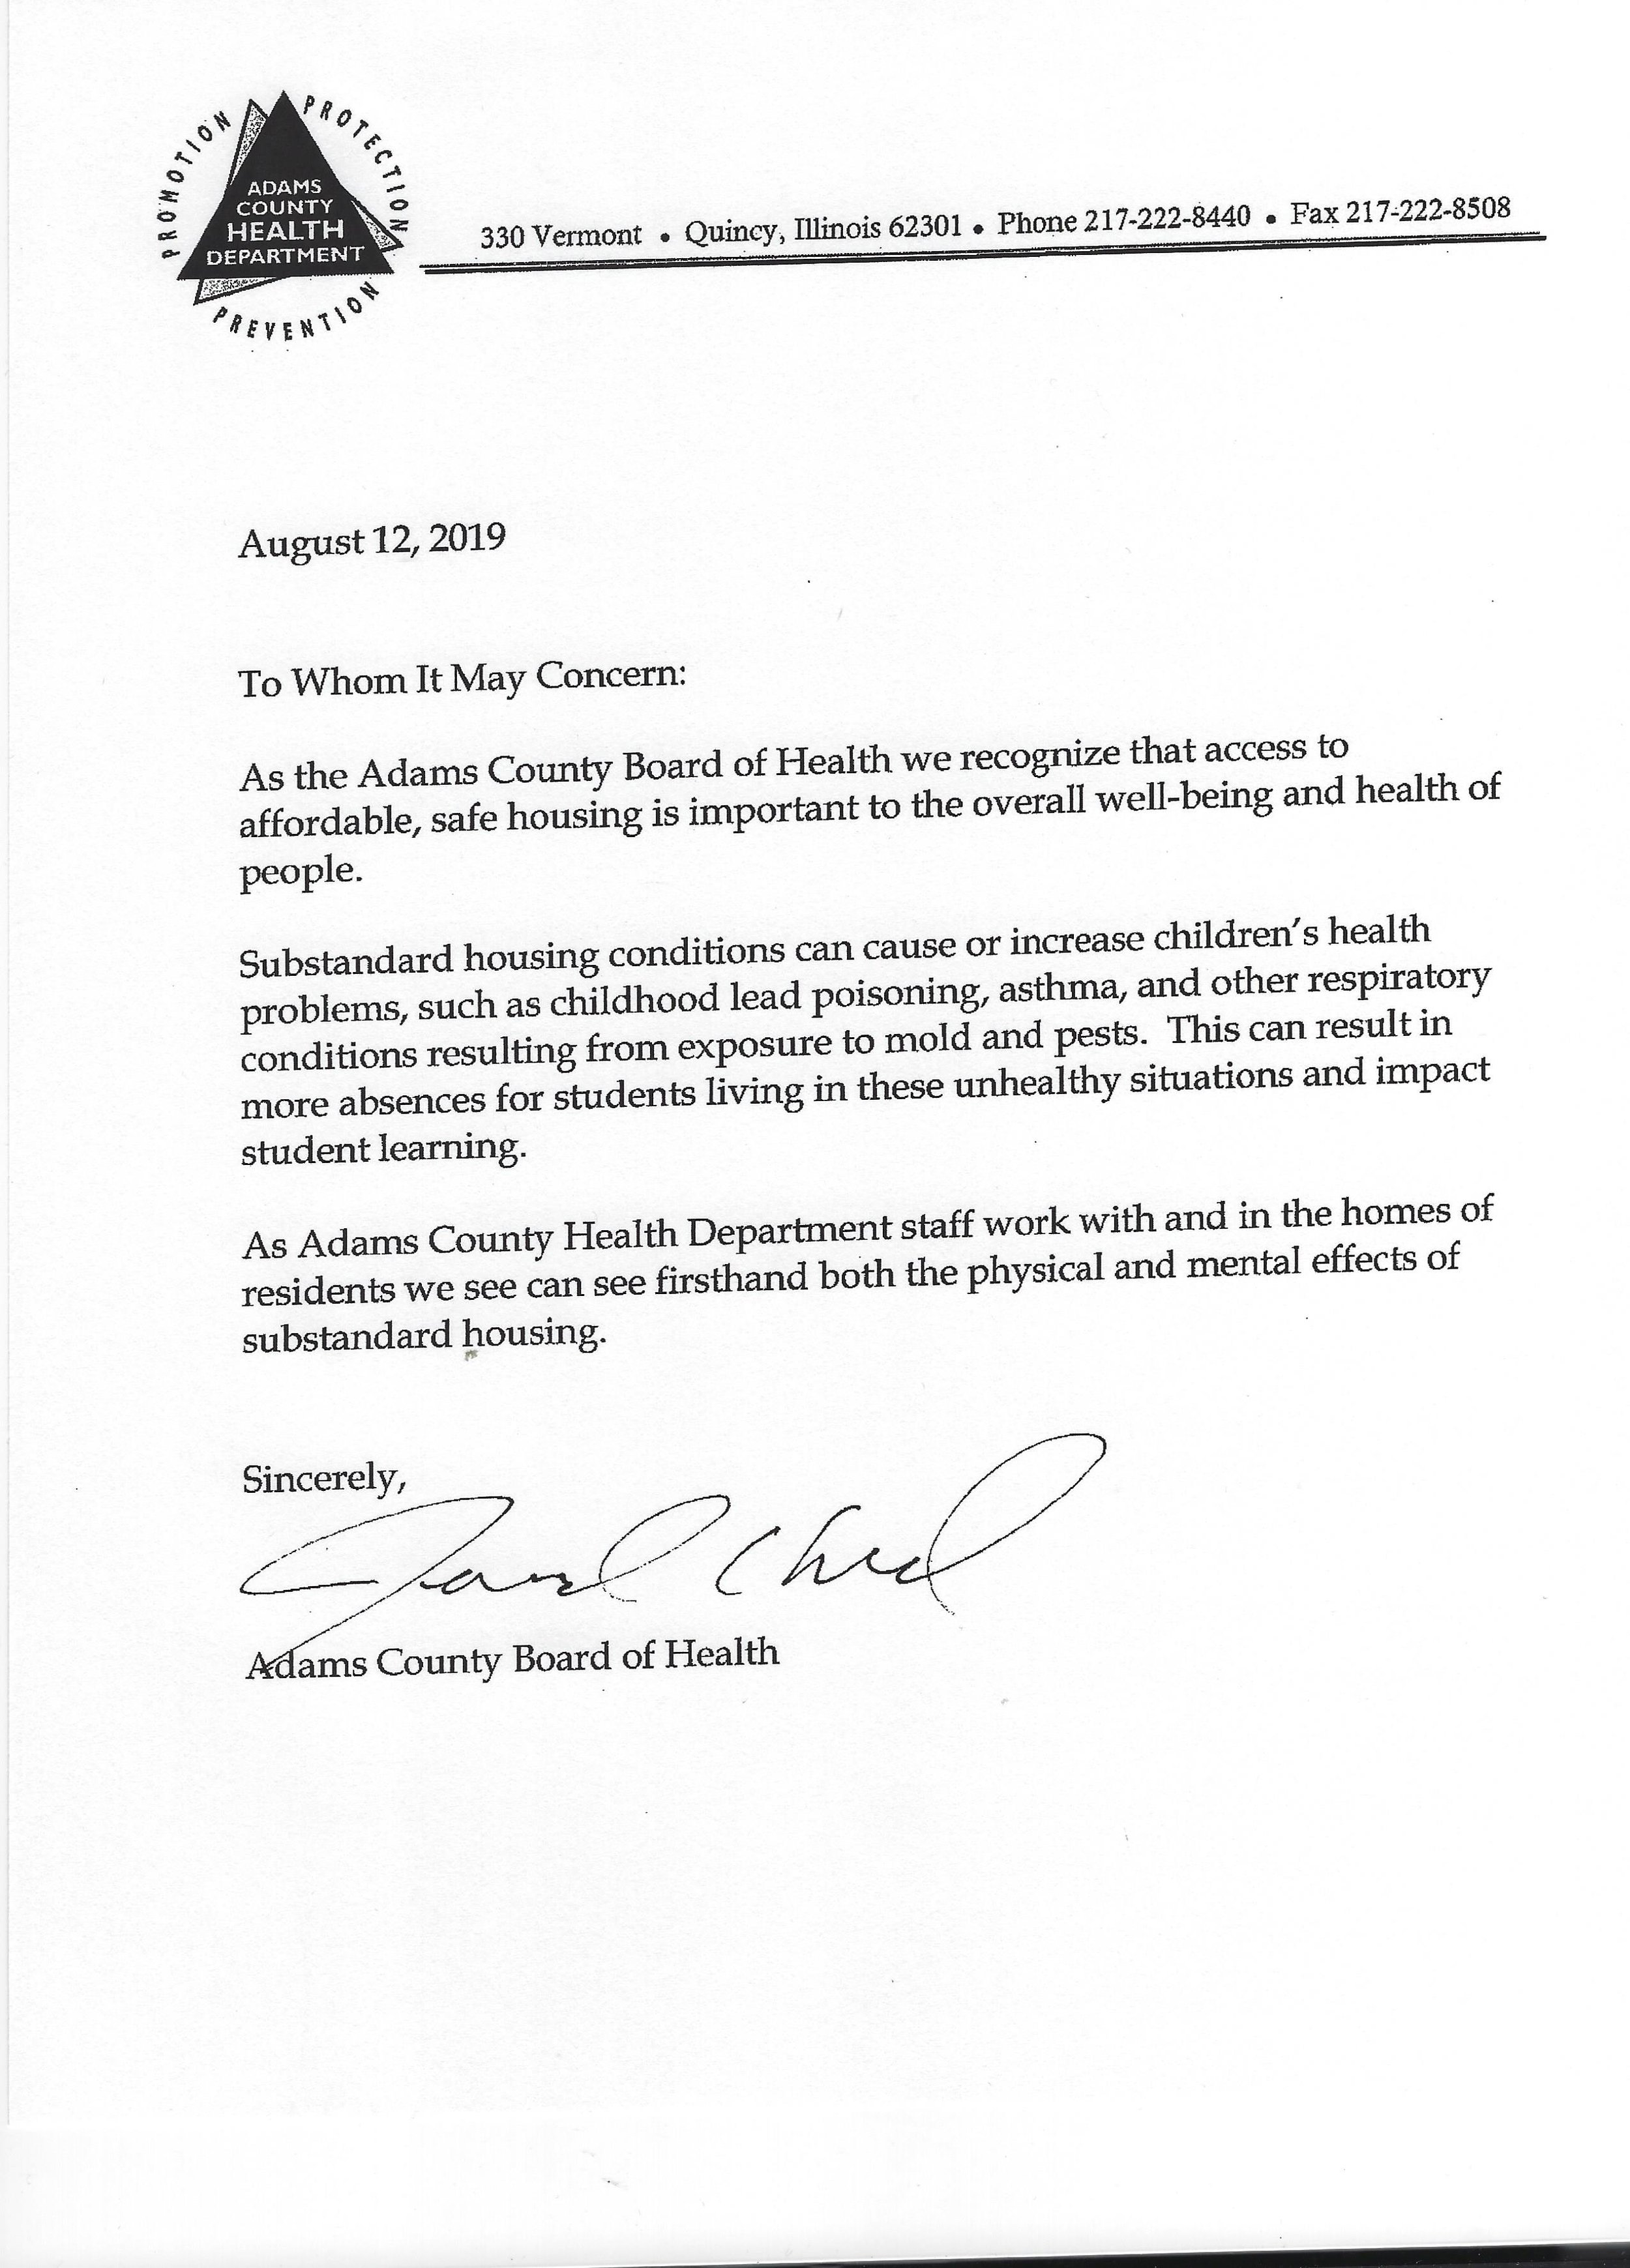 QIPP Adams County Health Department Letter of Support.jpeg